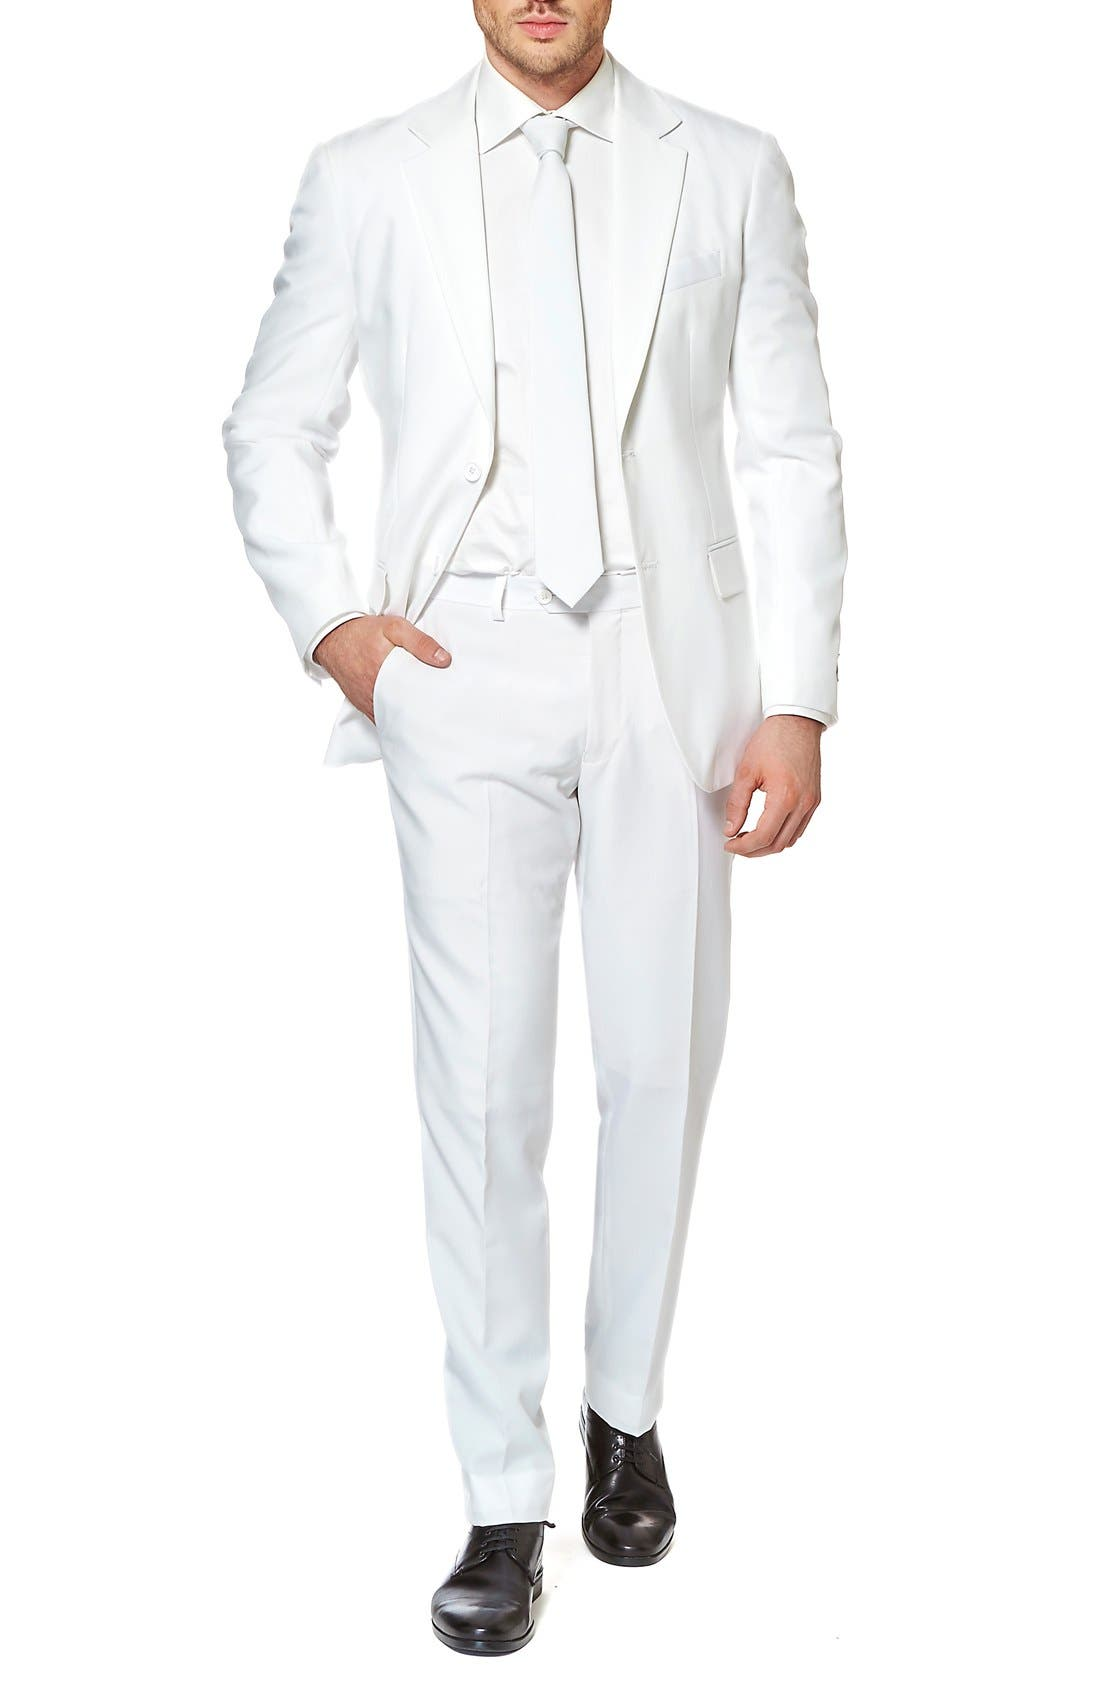 OPPOSUITS White Knight Trim Fit Two-Piece Suit with